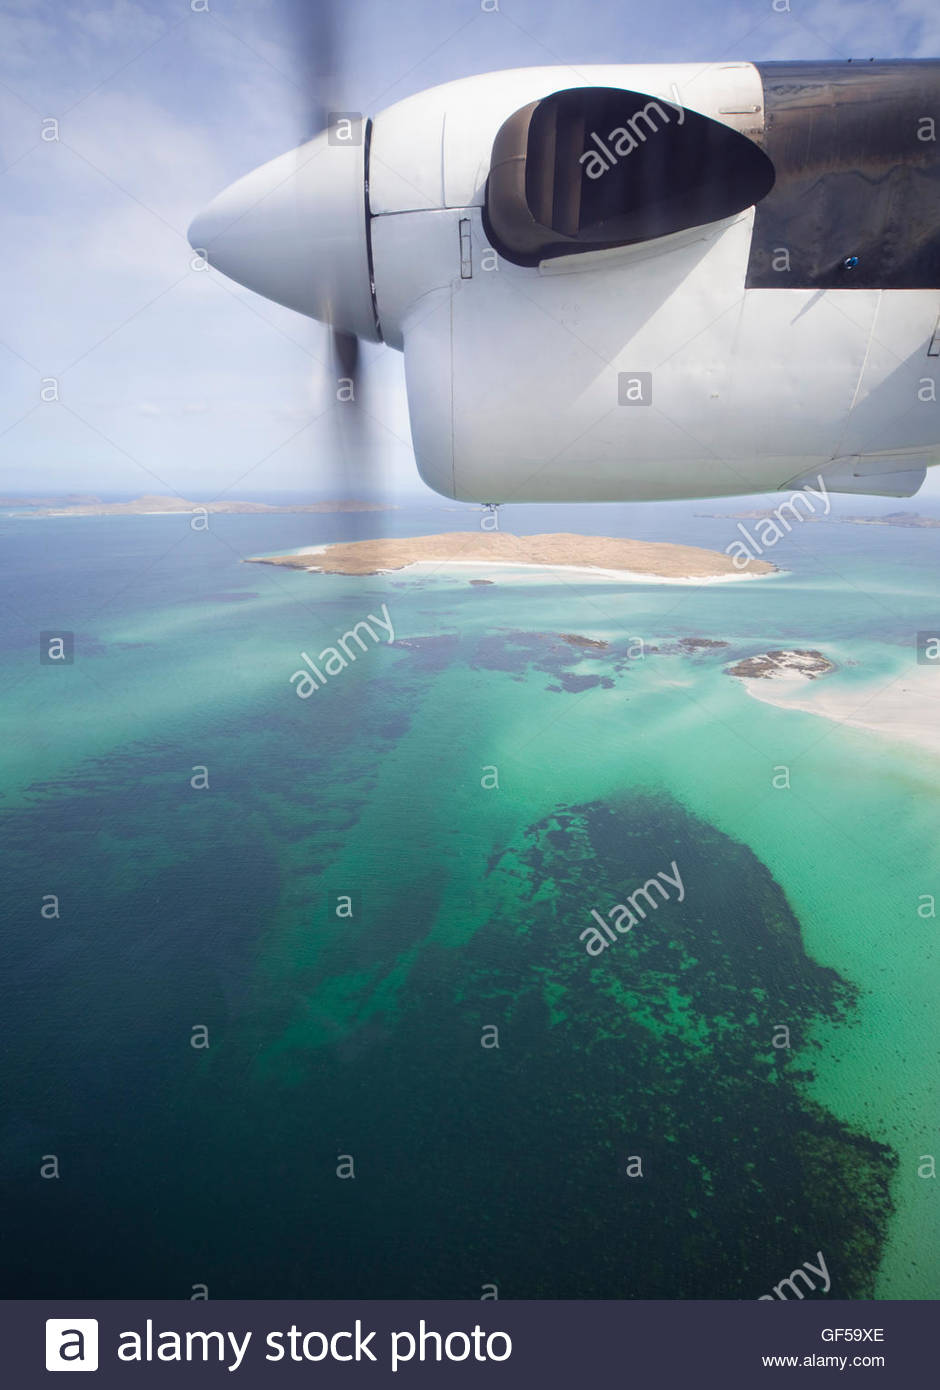 The view from the inter-island airplane to the Isle of Fuday of the coast of Barra, Outer Hebrides, Scotland. - Stock Image